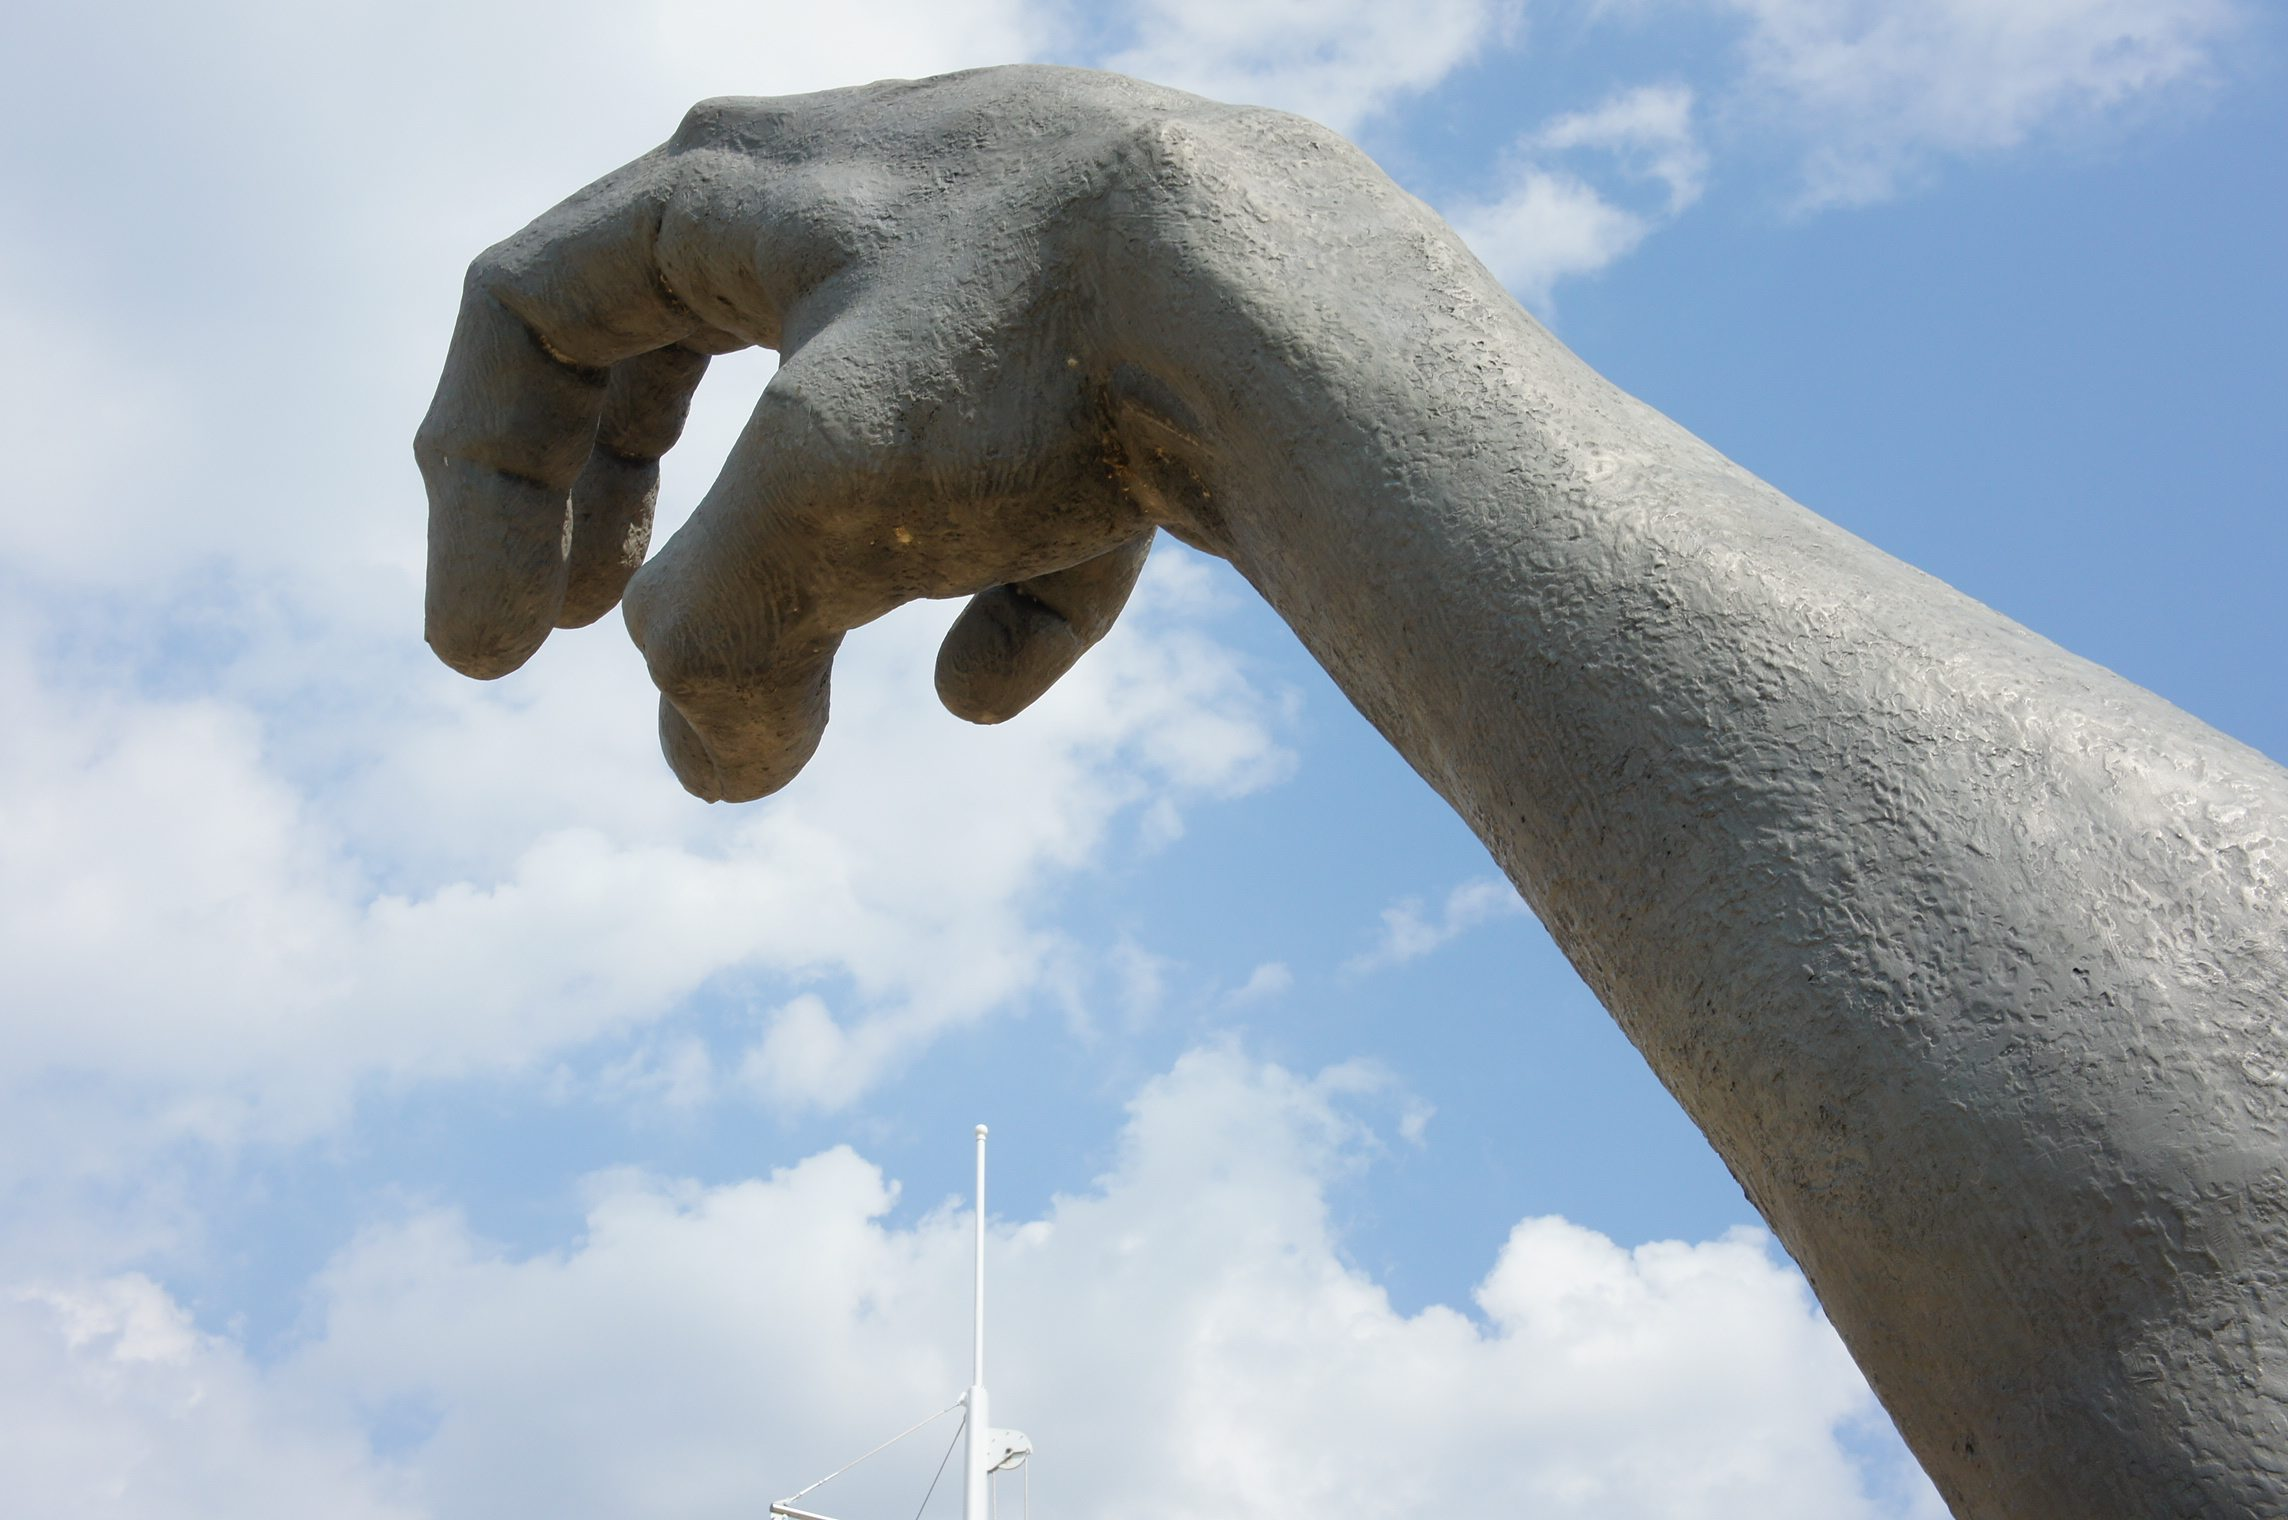 J. Seward Johnson Jr screaming statue contemporary art installation sculpture on sandy beach rising from the earth close-up of the hand